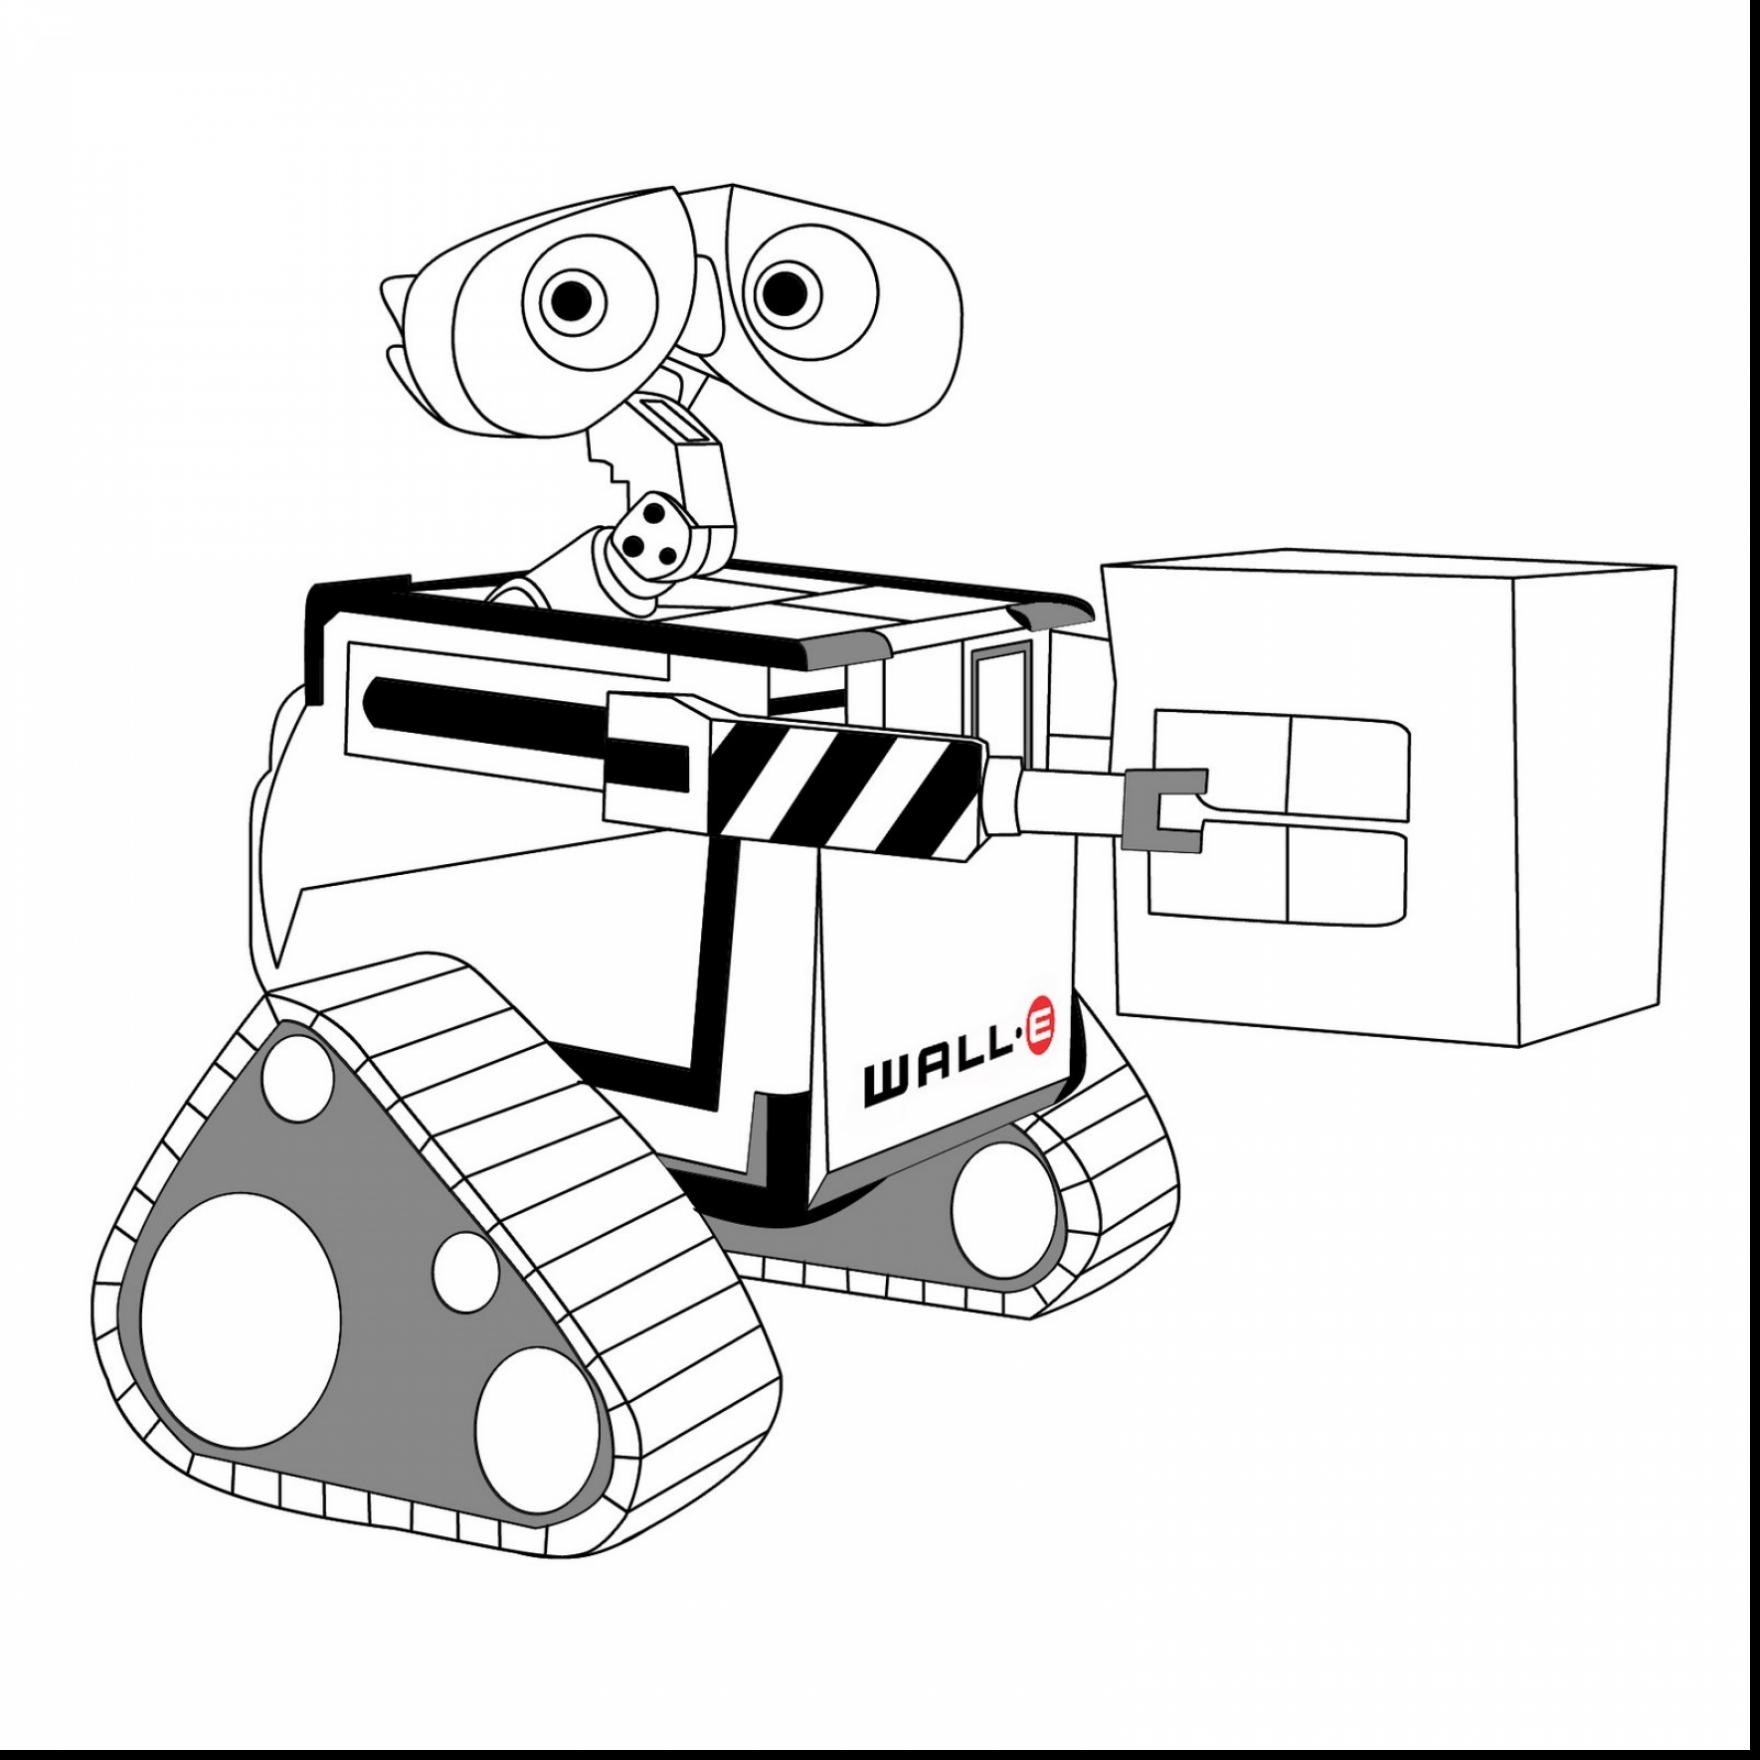 1760x1760 Wall E Coloring Pages Gallery